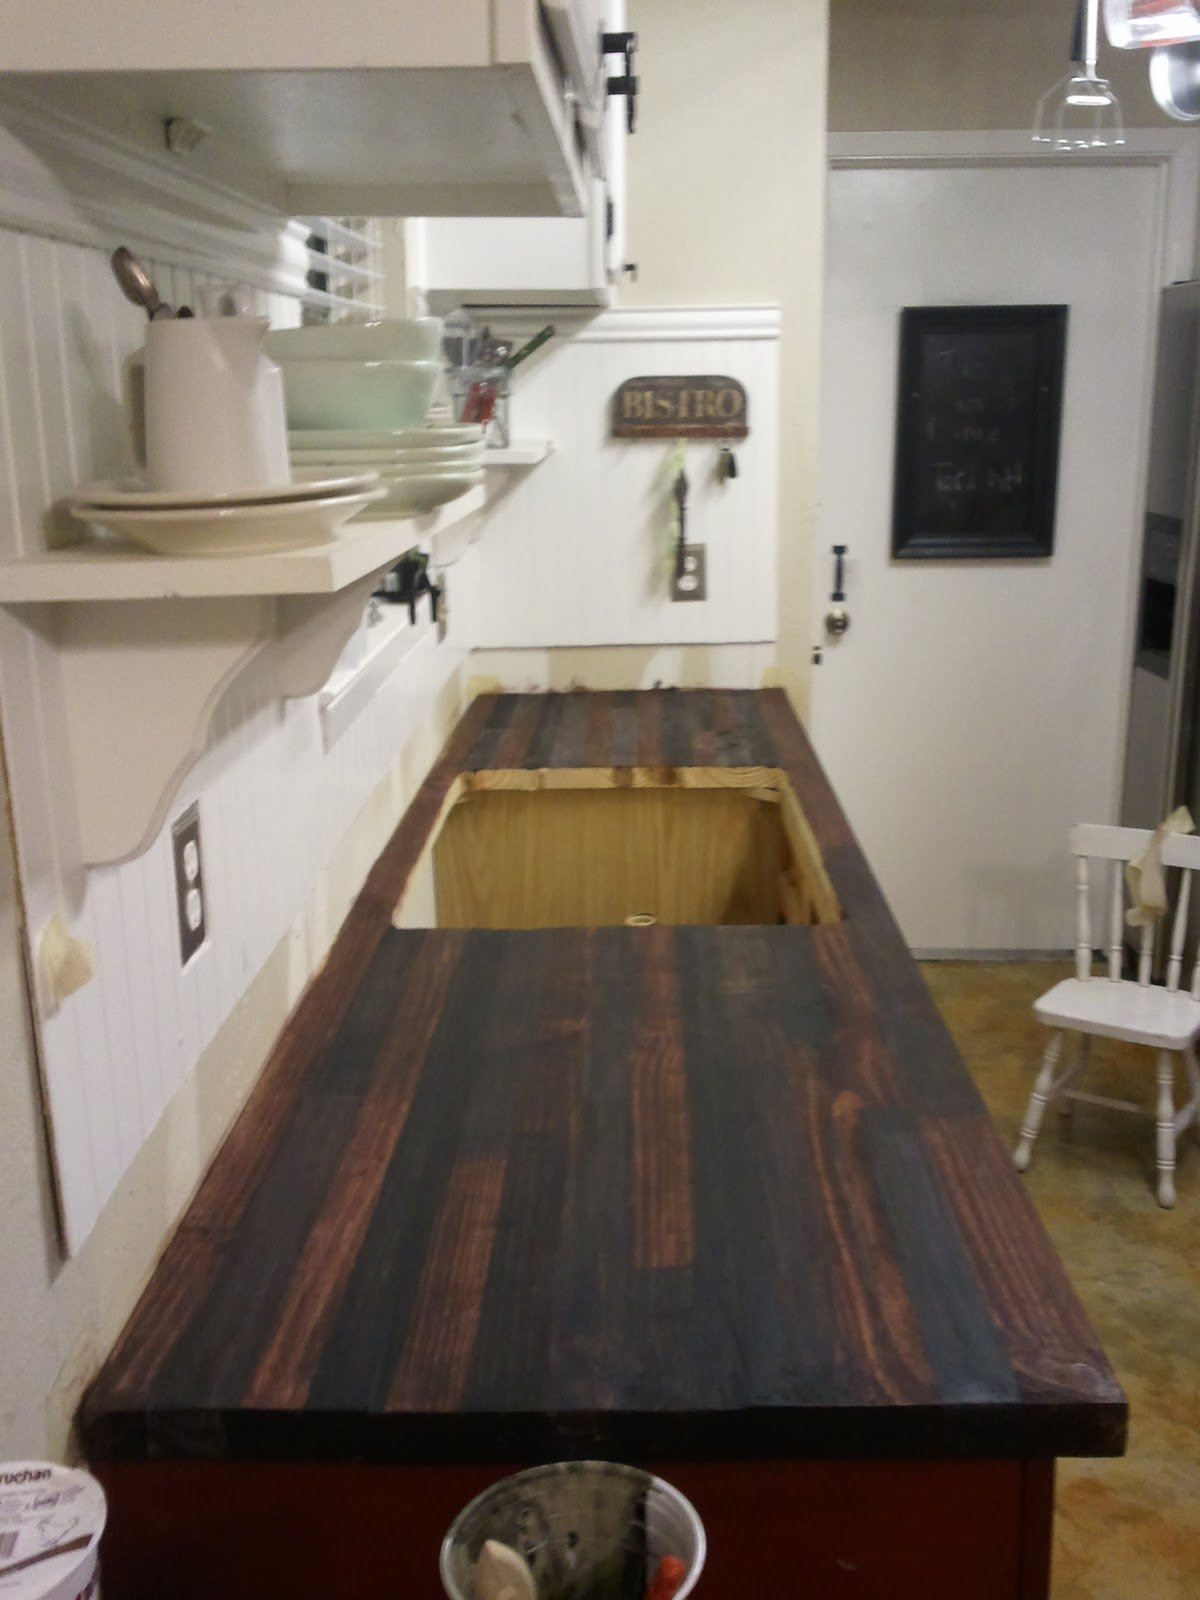 Inexpensive Countertops : DIY Butcher Block Counter Tops - WNY Handyman